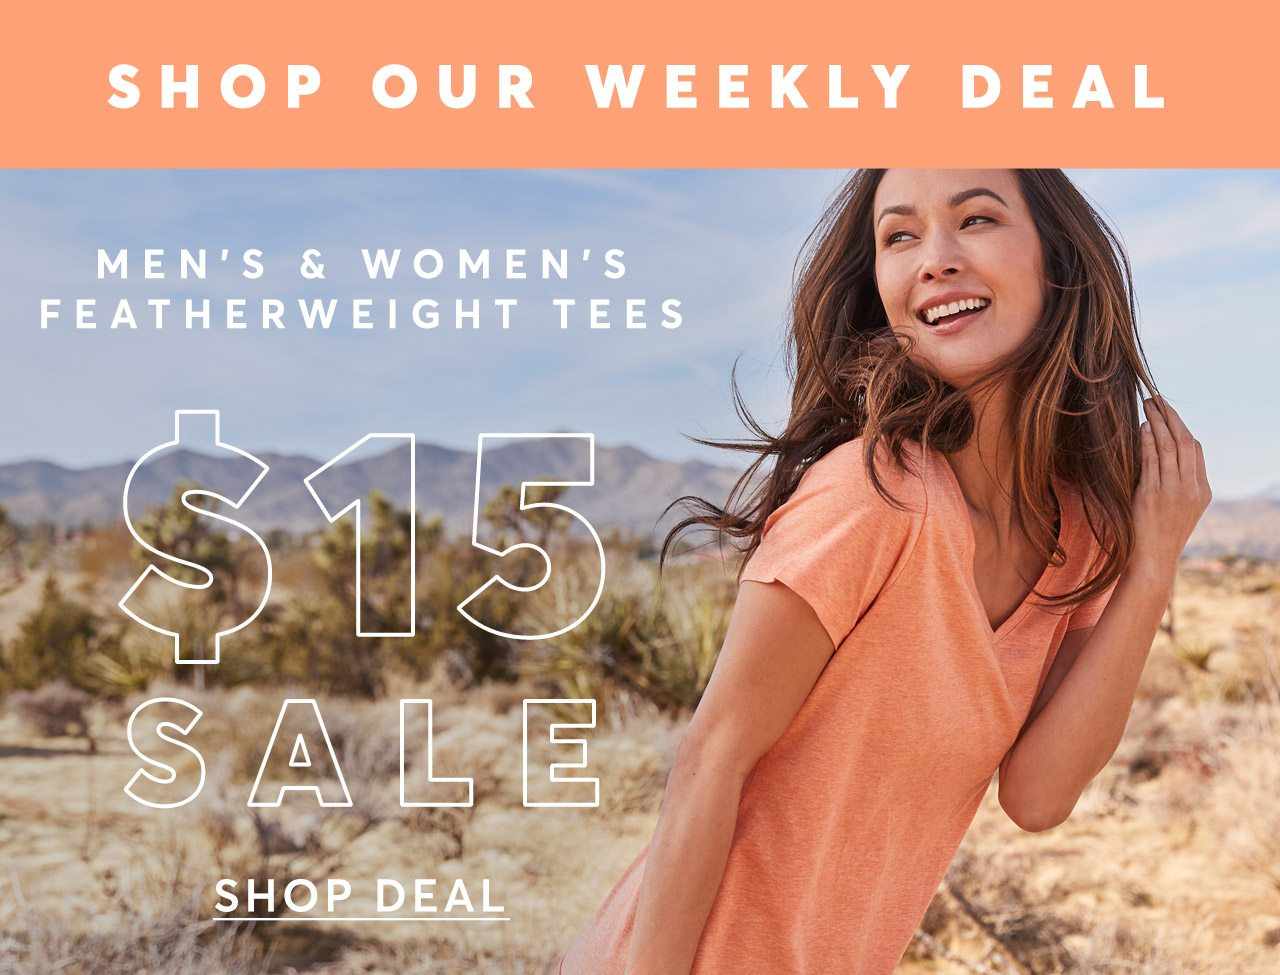 Shop Our Weekly Deal: Featherweight Tees $15